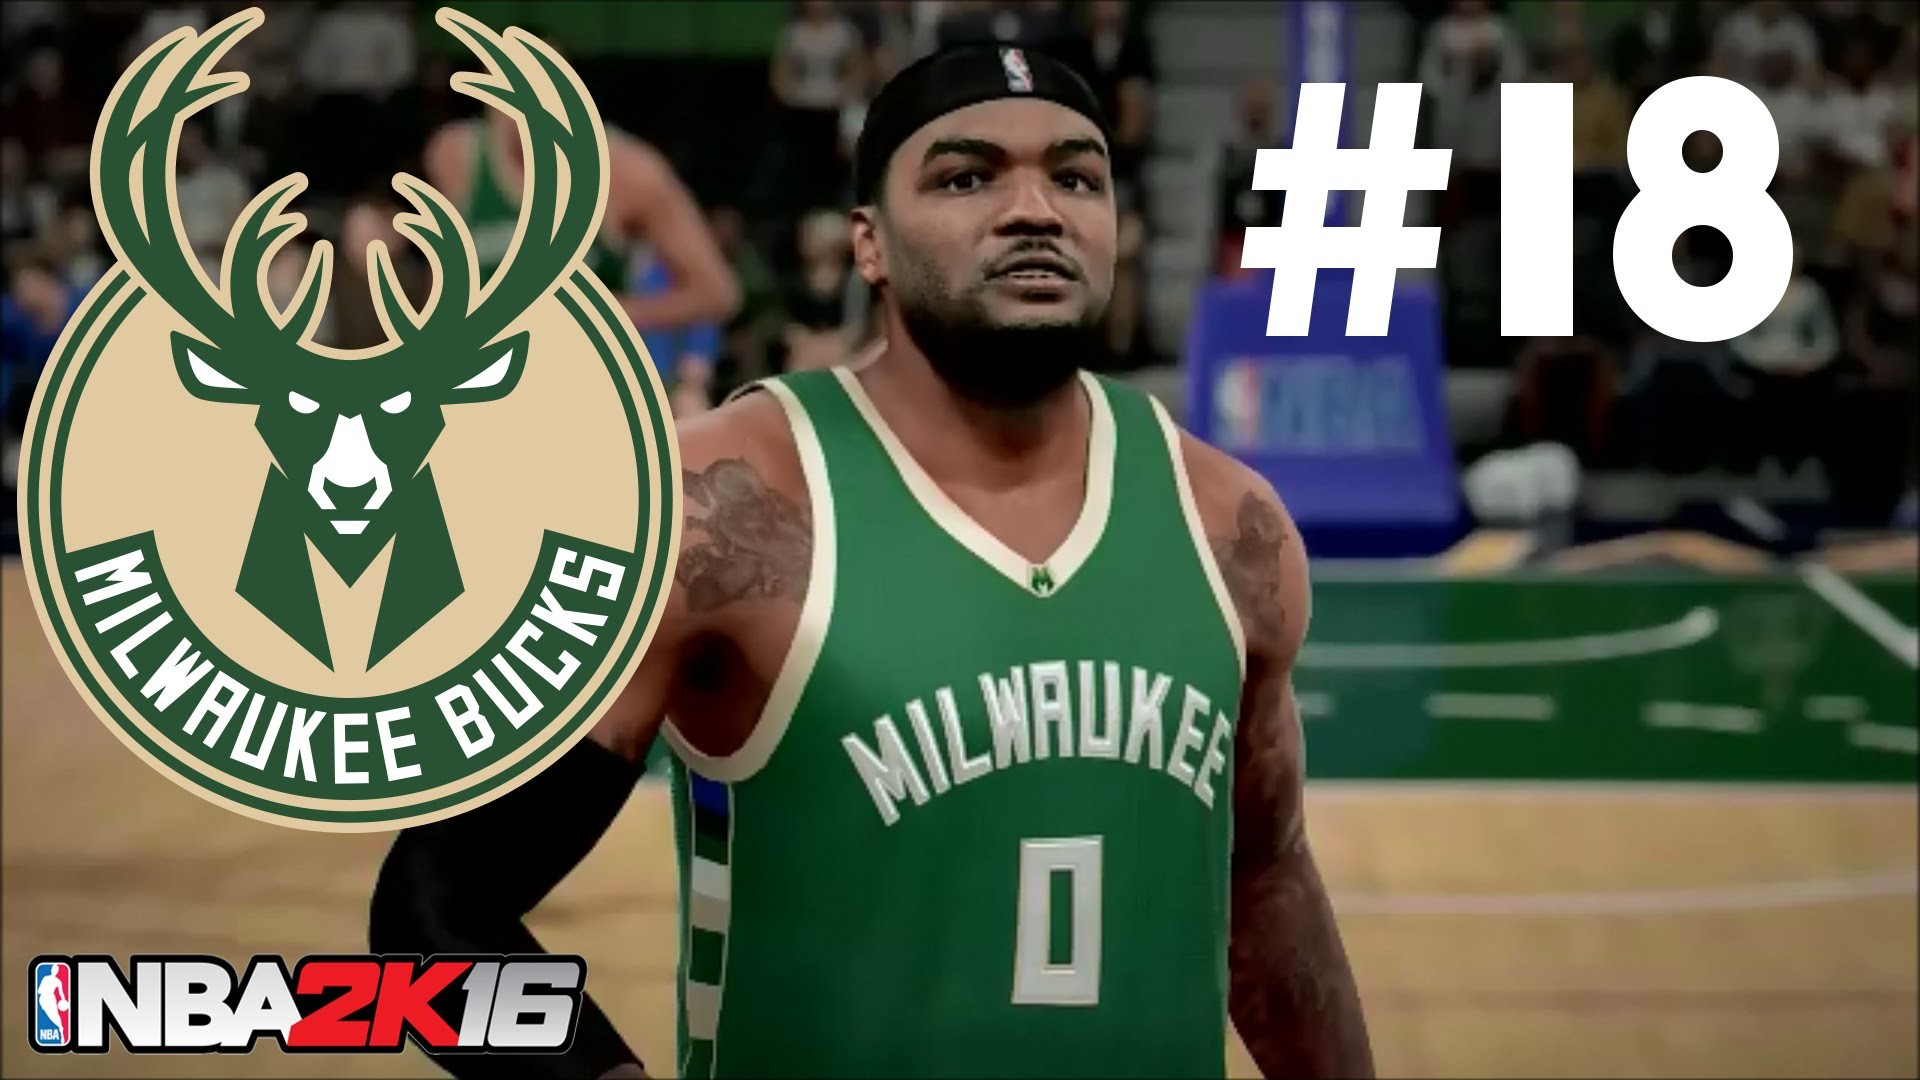 1920x1080 NBA 2K16 Milwaukee Bucks MyLeague | Gordon Hayward's Time?!? | Episode 18 -  YouTube